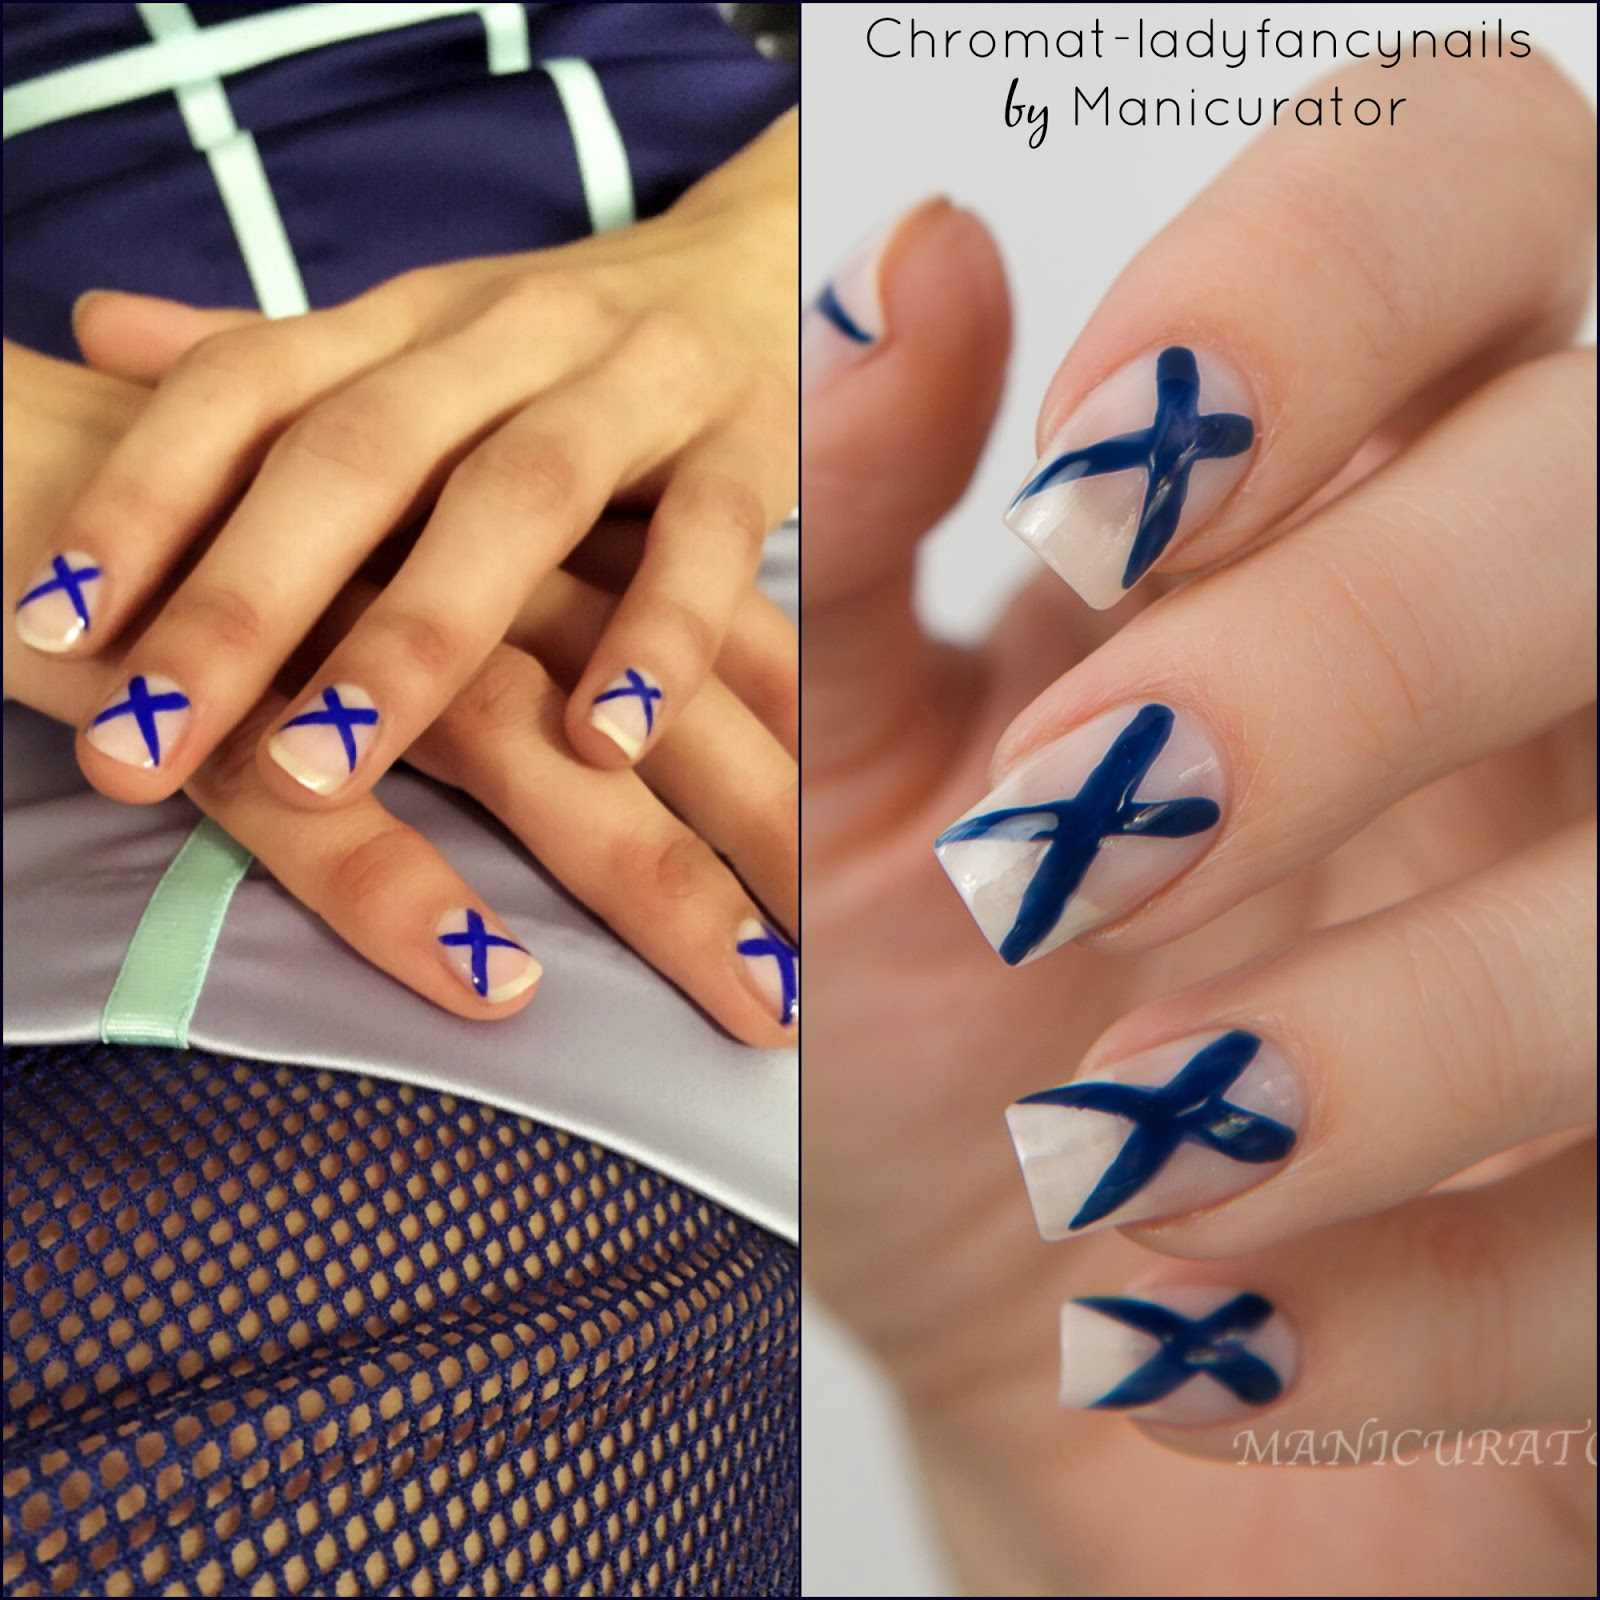 NAFW 2016 Day 7 - Fall 2016 Runway Nail Art: Ladyfancynails for ...